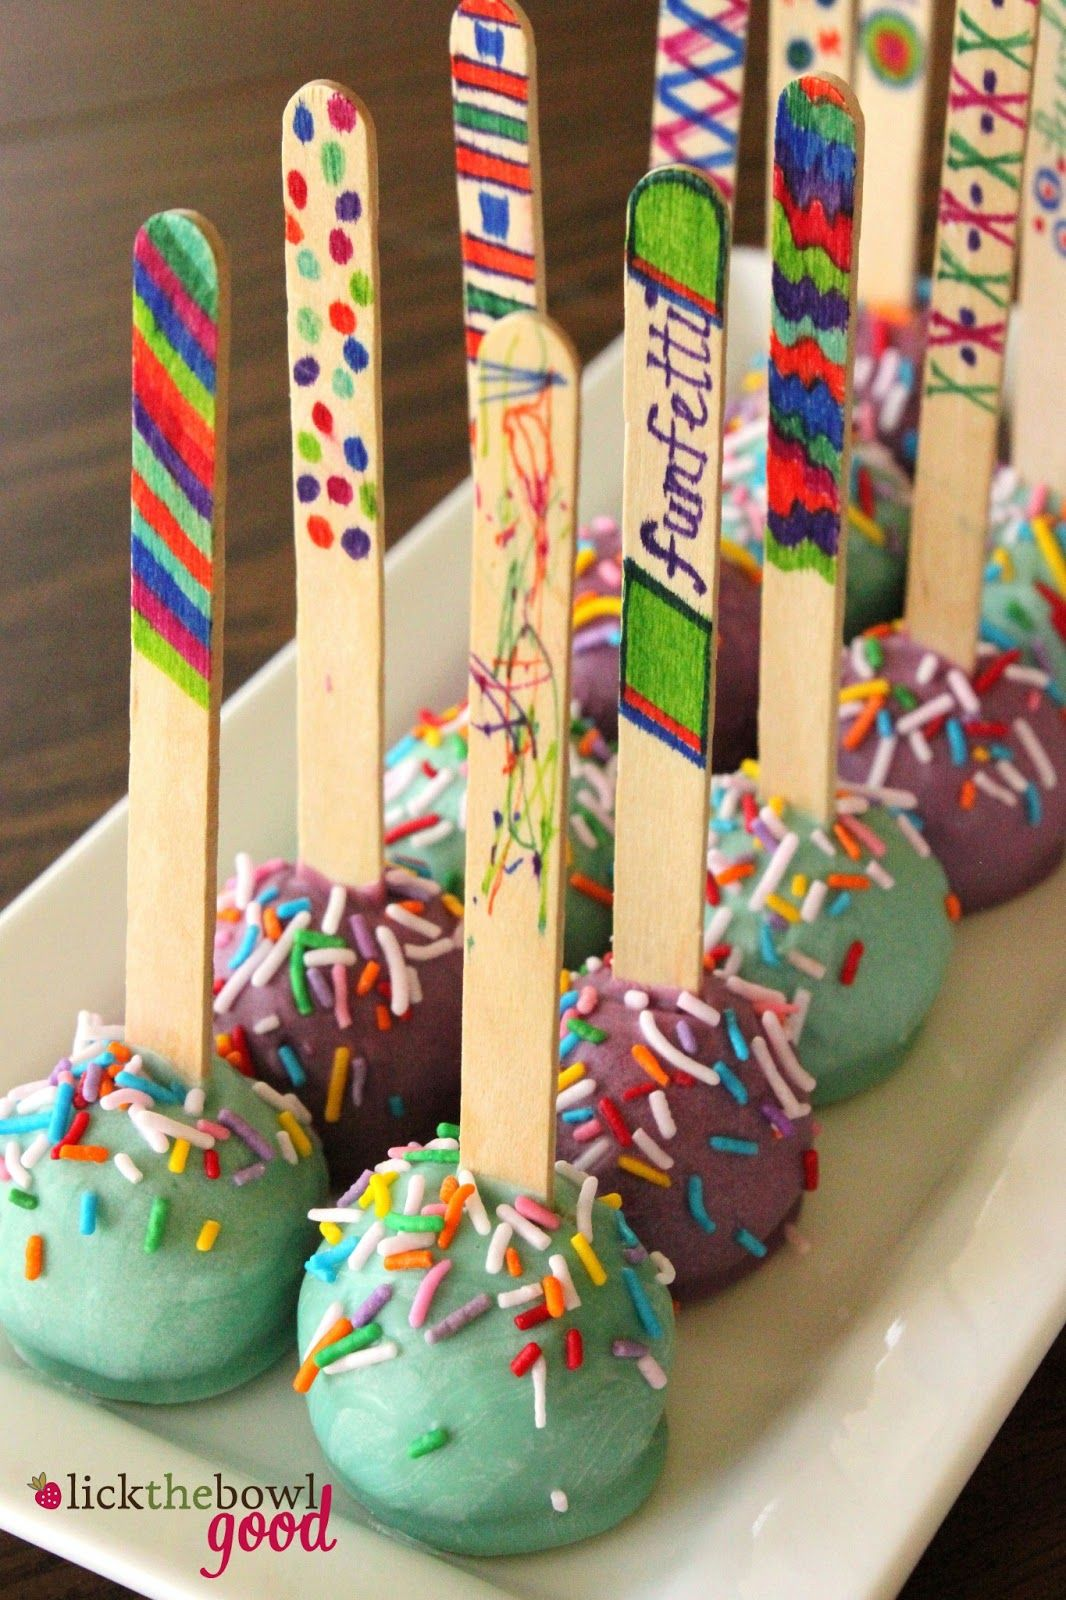 Lick The Bowl Good My Birthday Cakes and NoBake Cake Pops snack